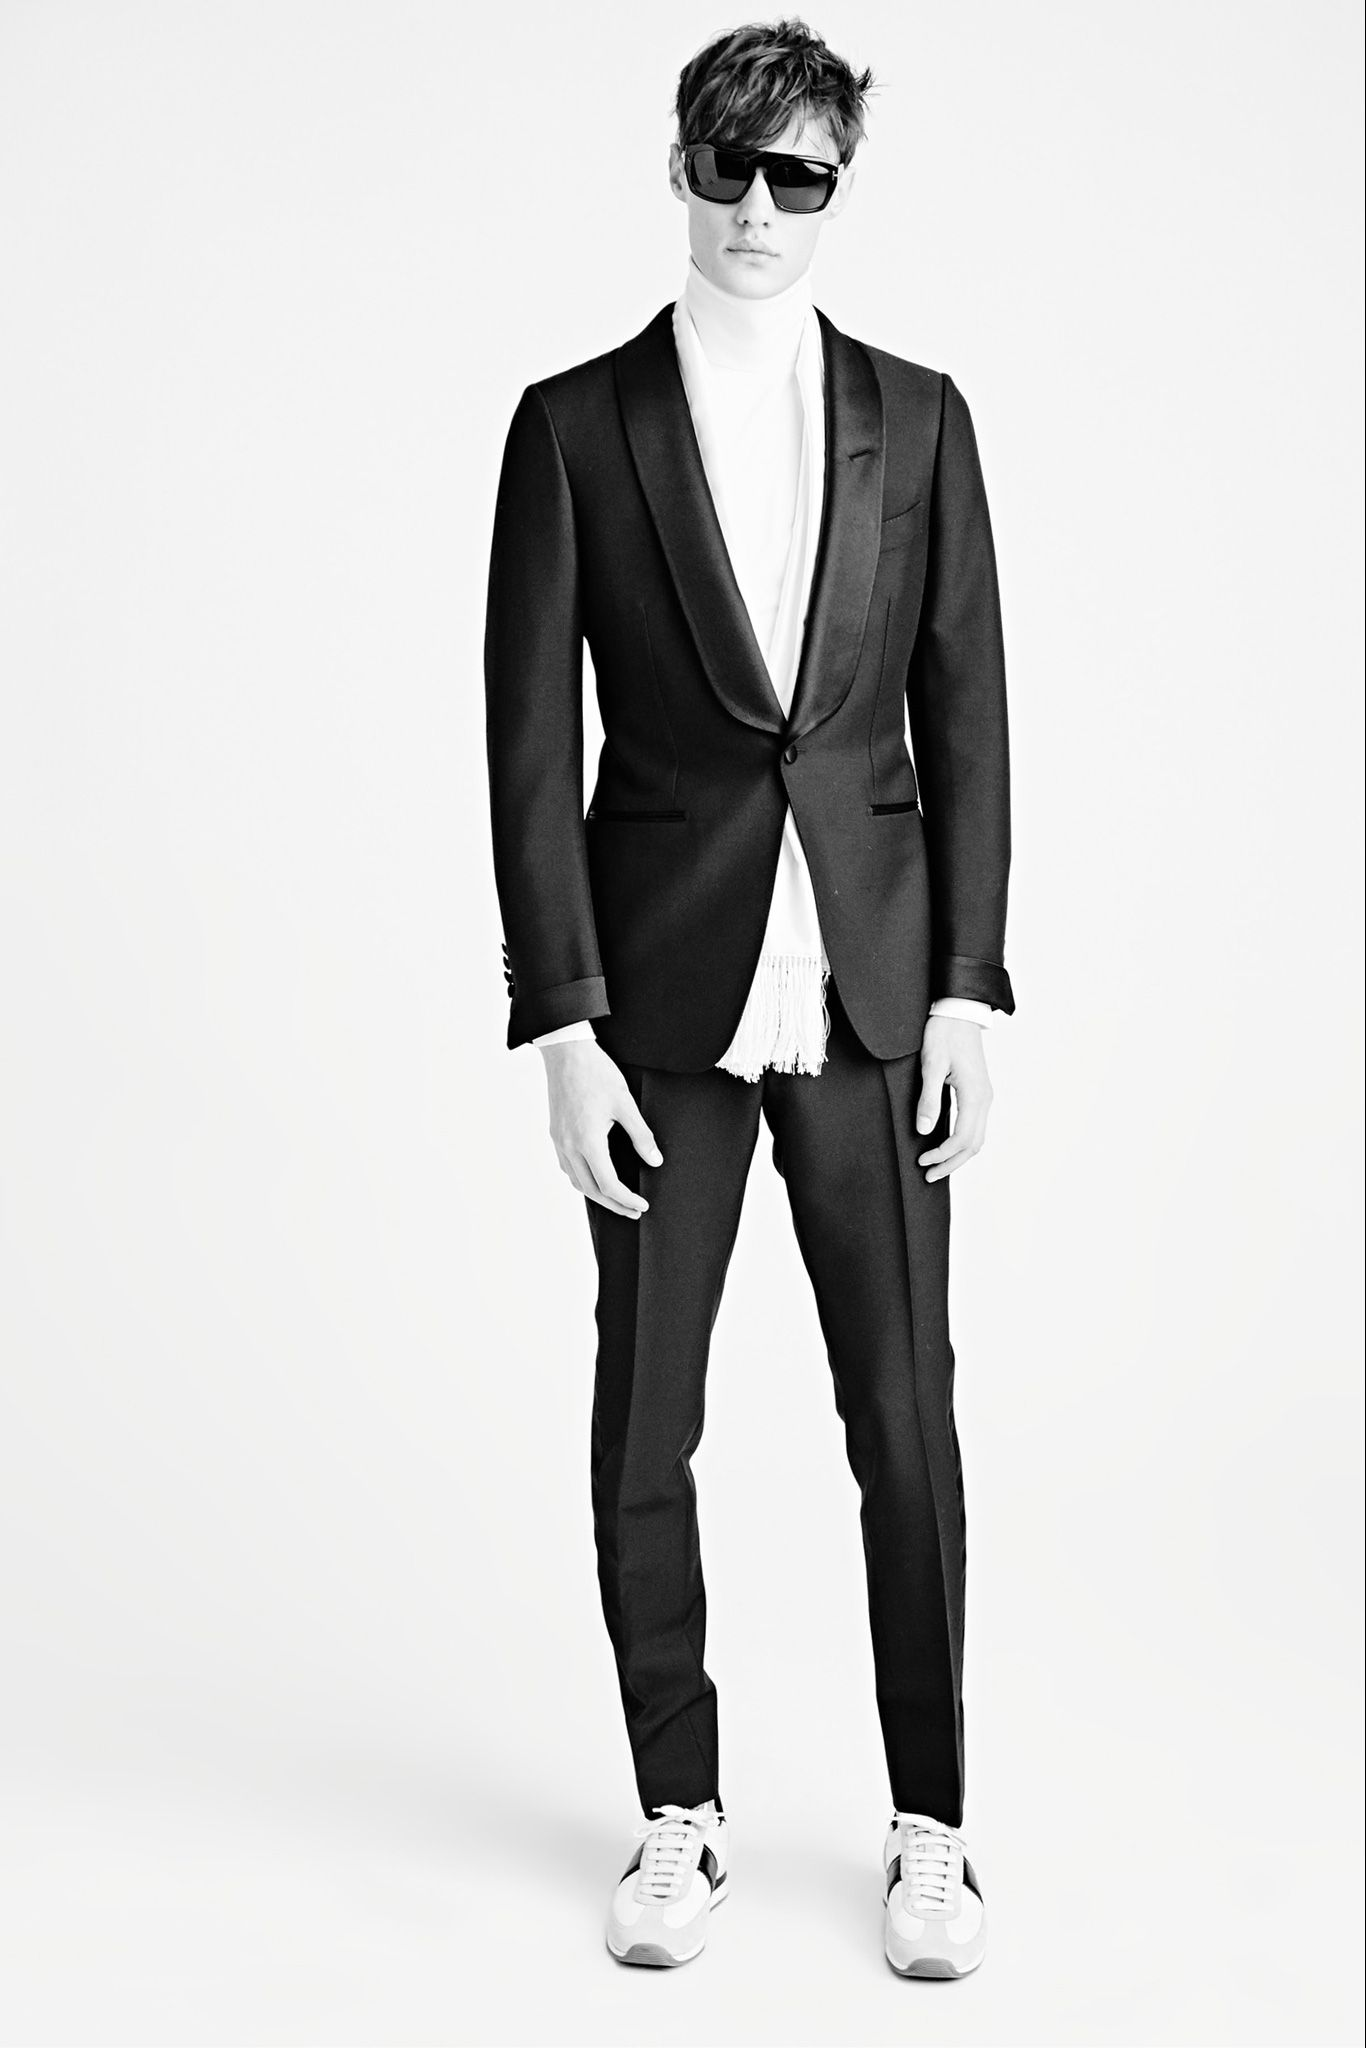 c4684f92d105 Tom Ford Fall 2015 Menswear - Collection - Gallery - Style.com ...